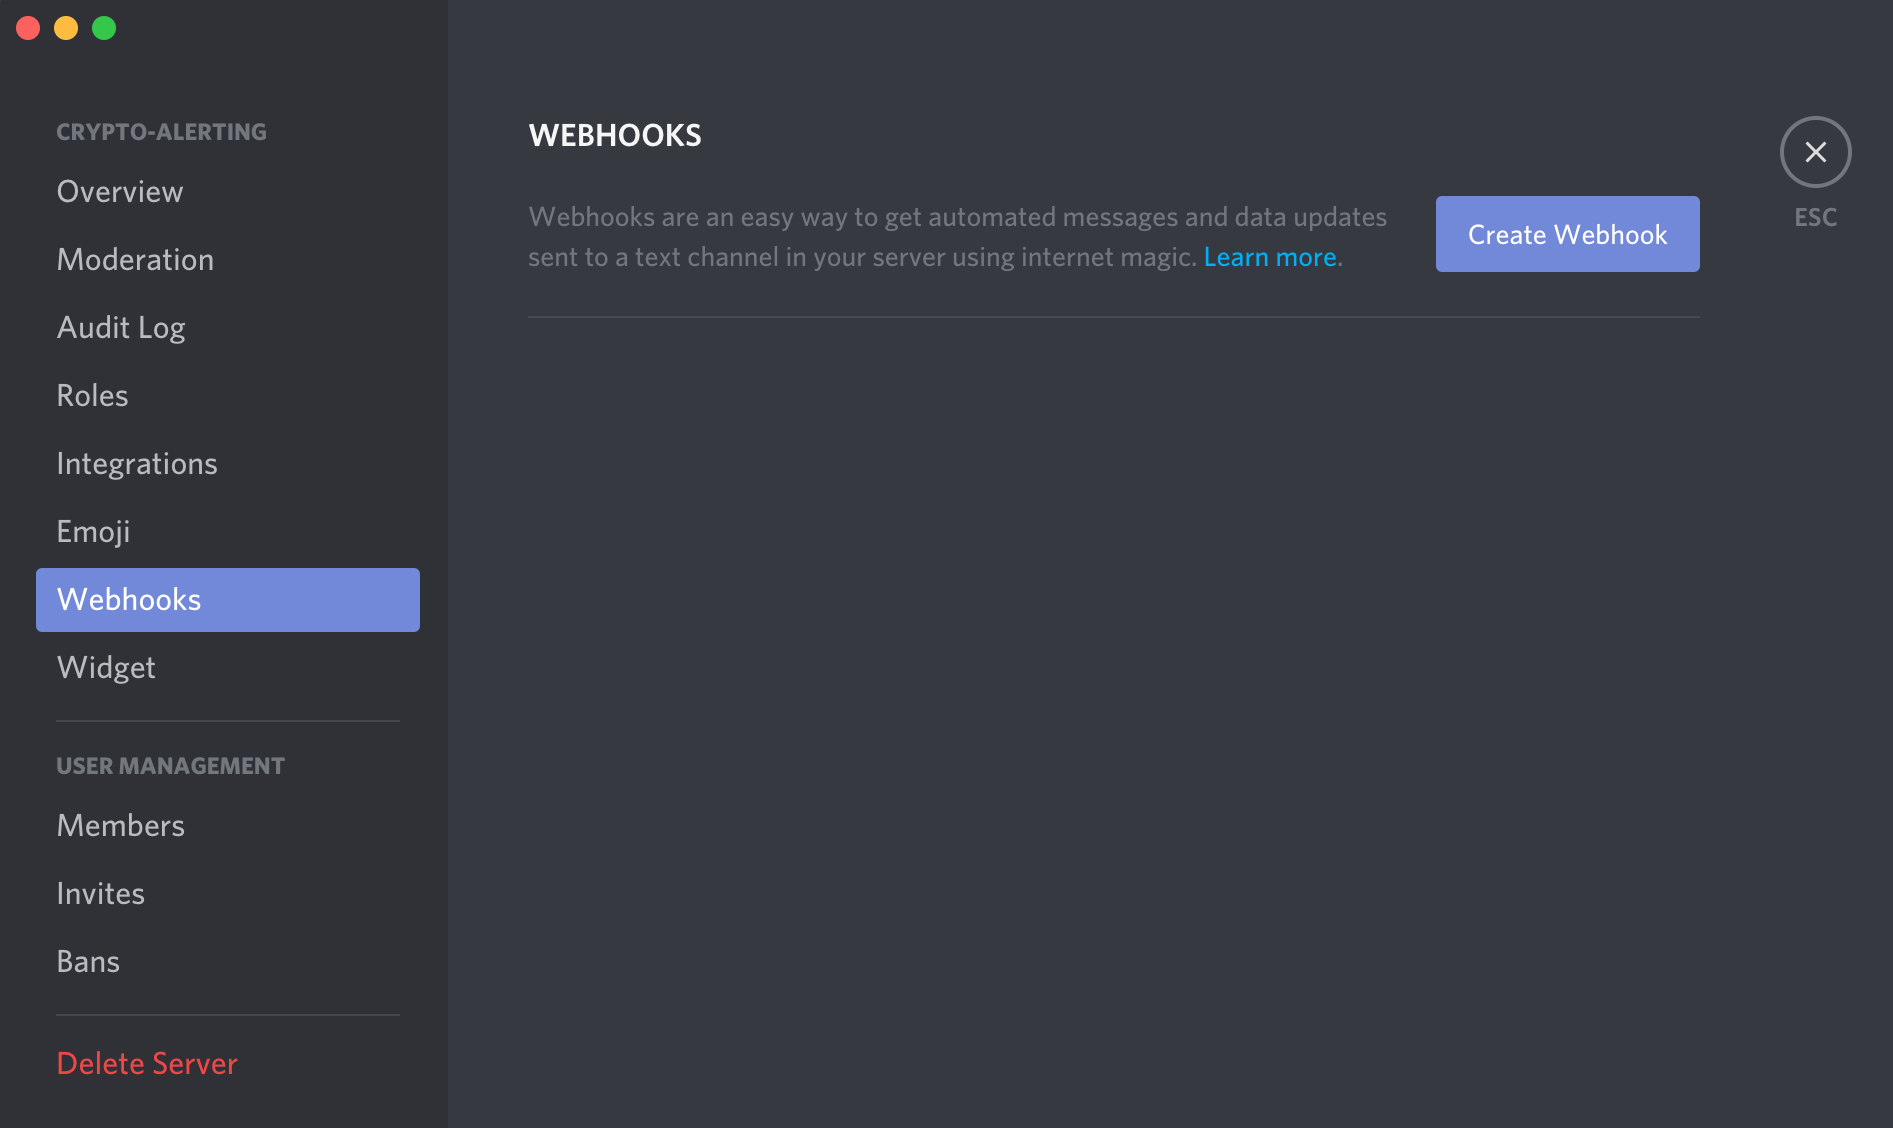 Discord Bot For Bitcoin & Crypto Notifications - Cryptocurrency Alerting